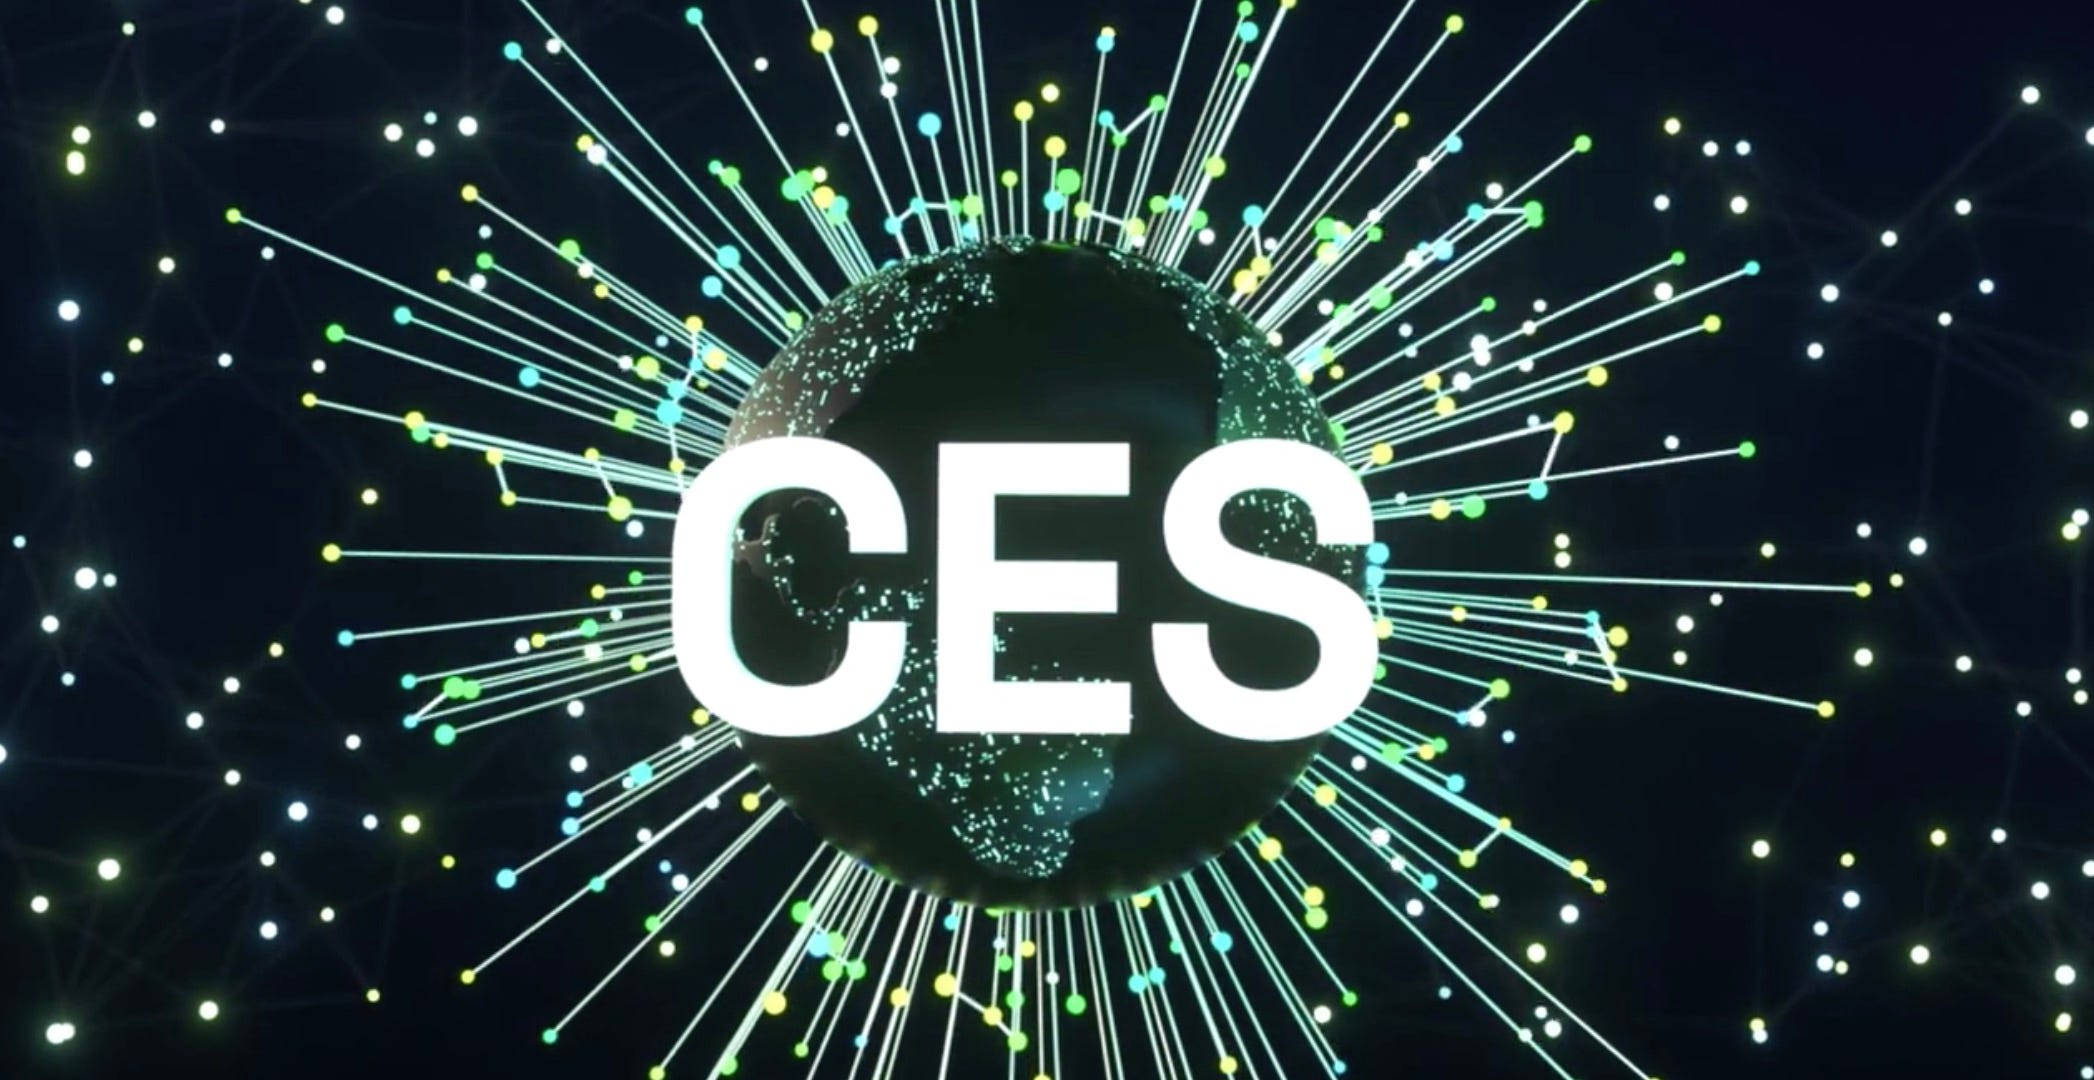 January tech highlights: CES digital, Samsung products